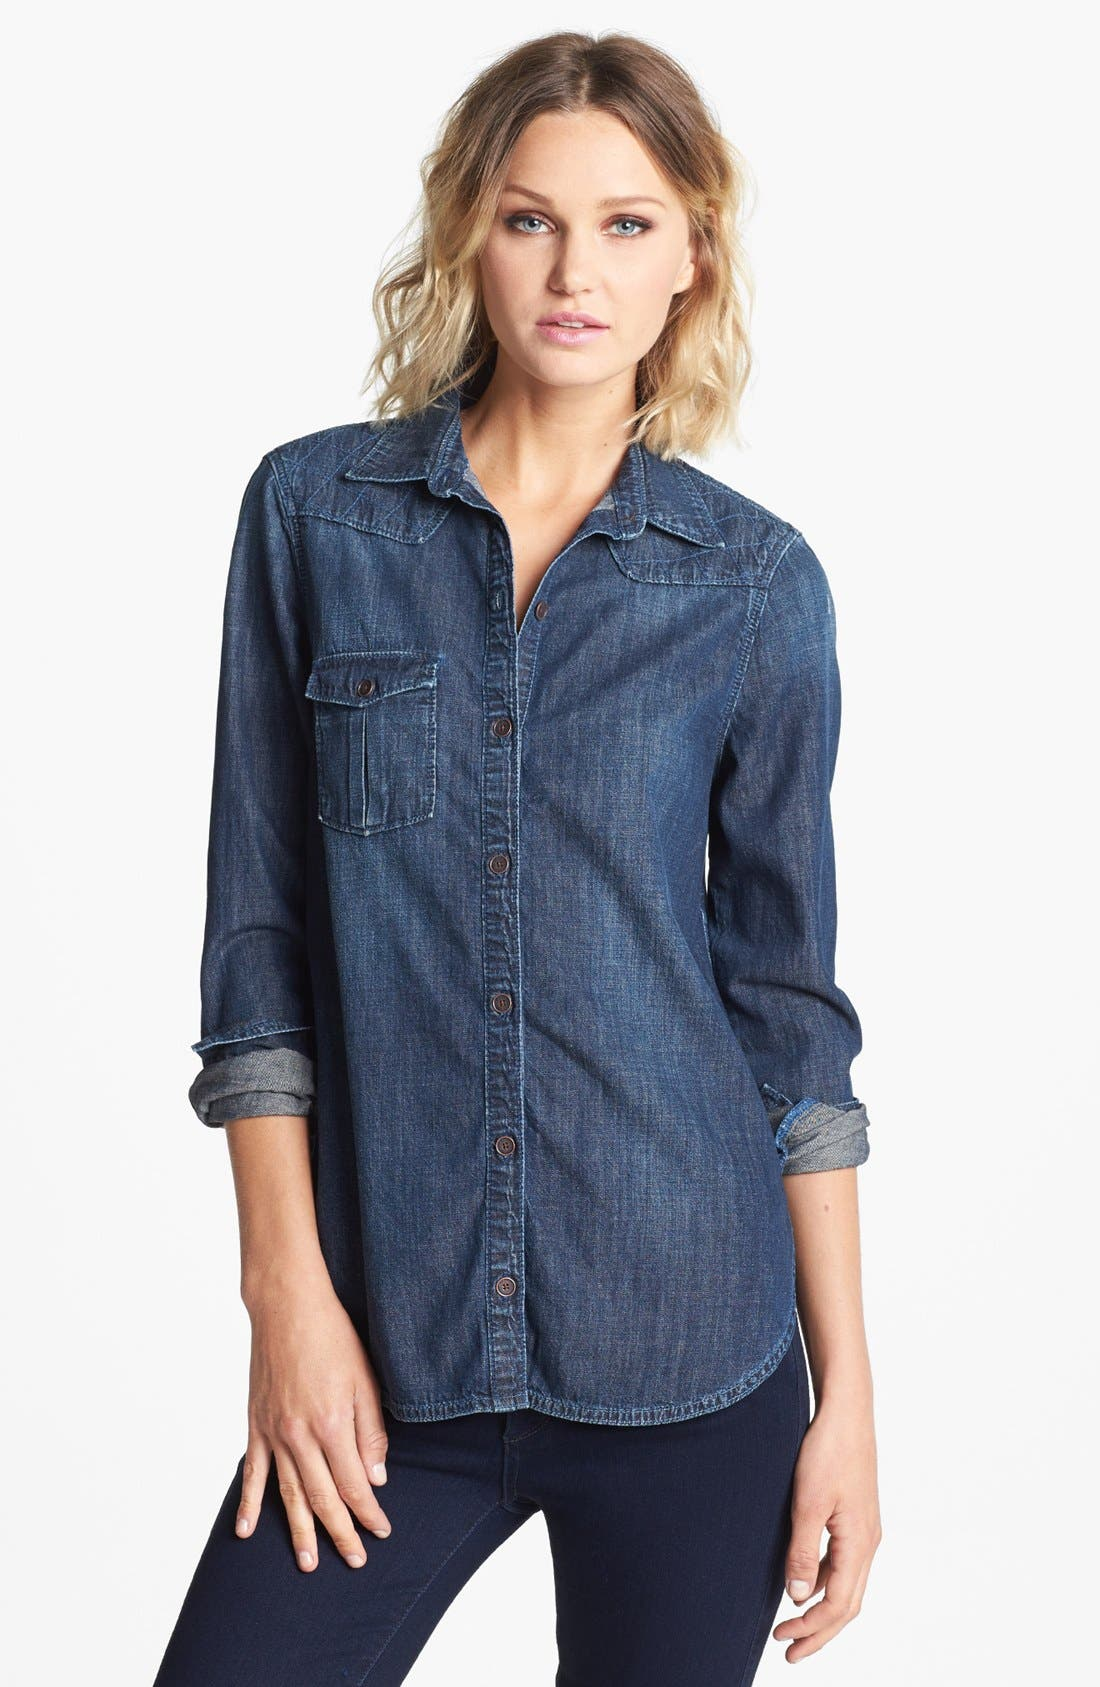 Main Image - Paige Denim 'Brooke' Stitched Yoke Denim Shirt